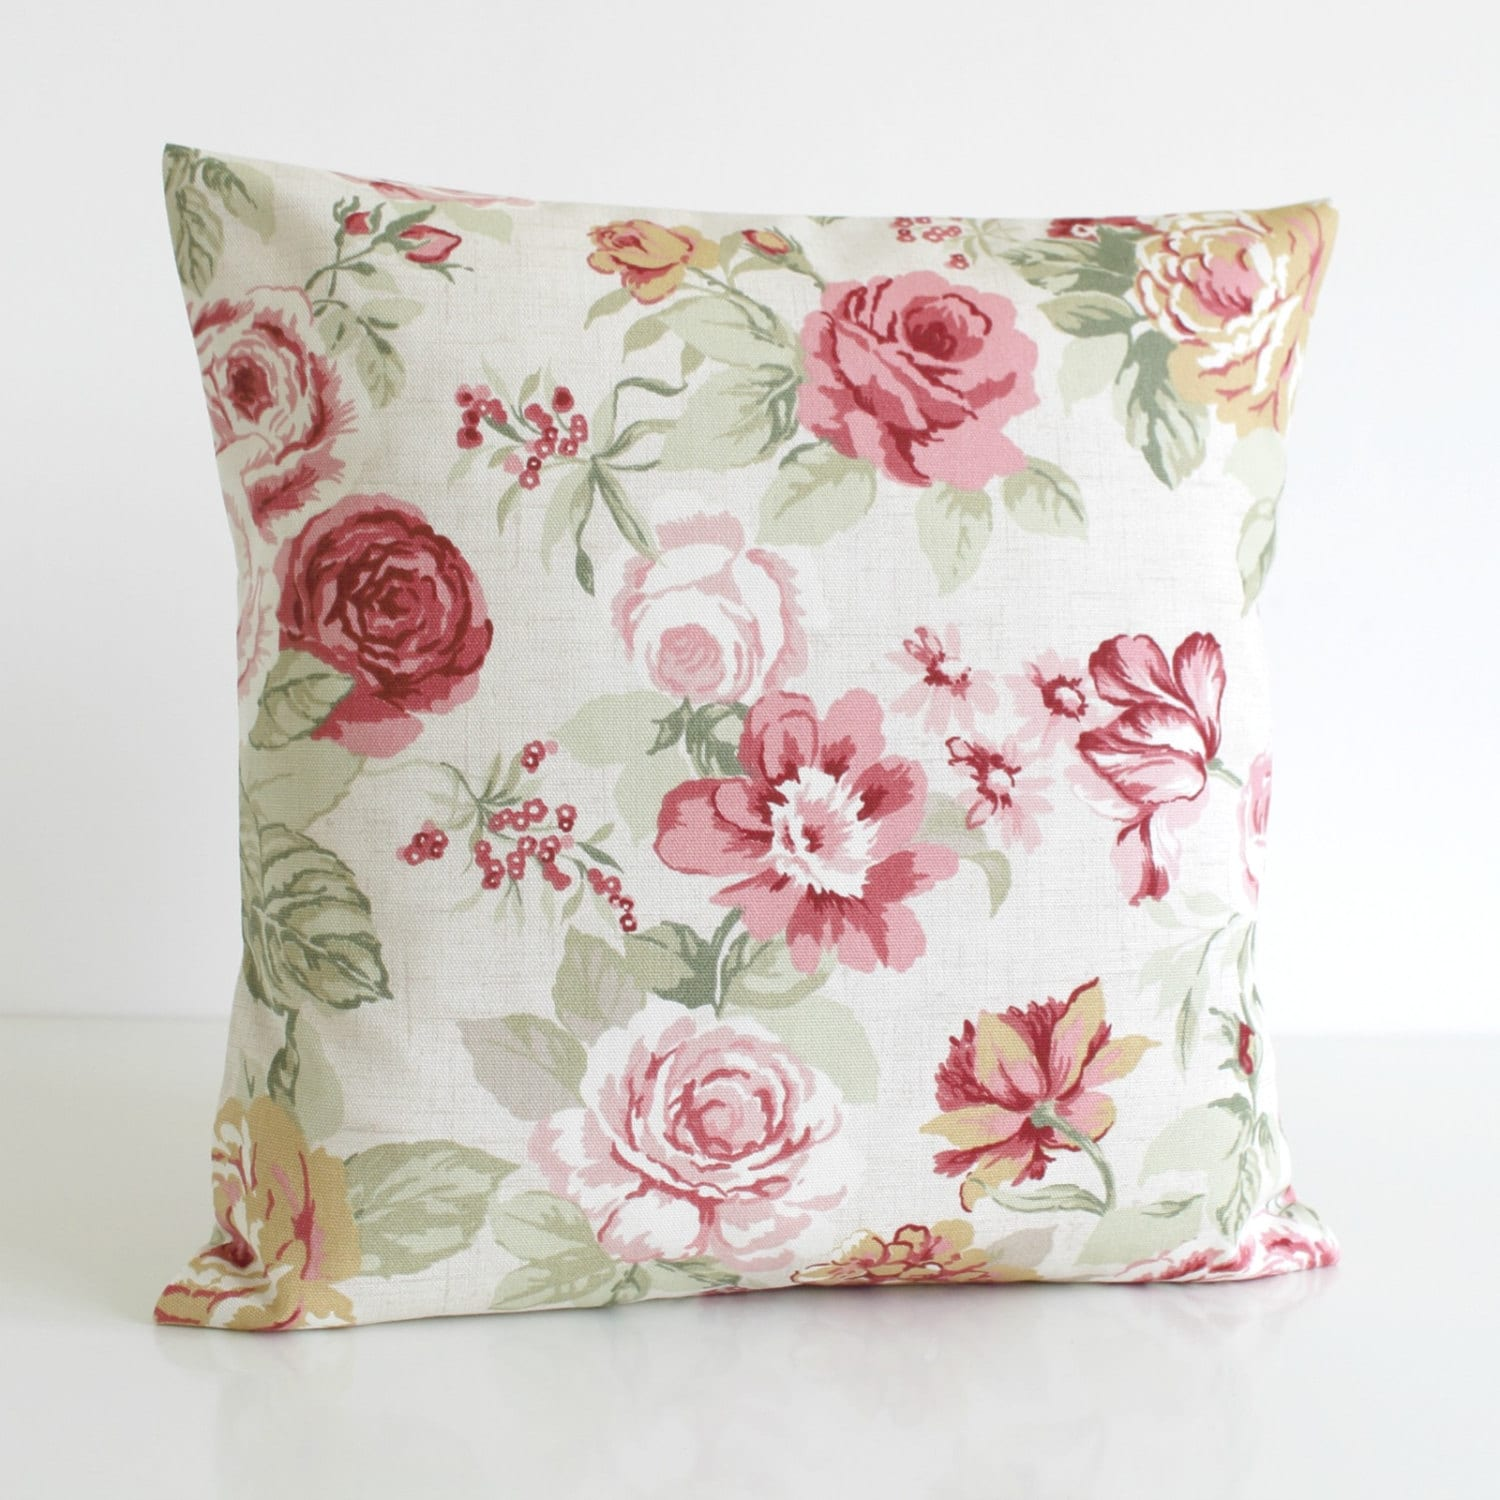 Shabby Chic Pillows White : Shabby Chic Decorative Pillow Cover Floral Cushion by CoupleHome